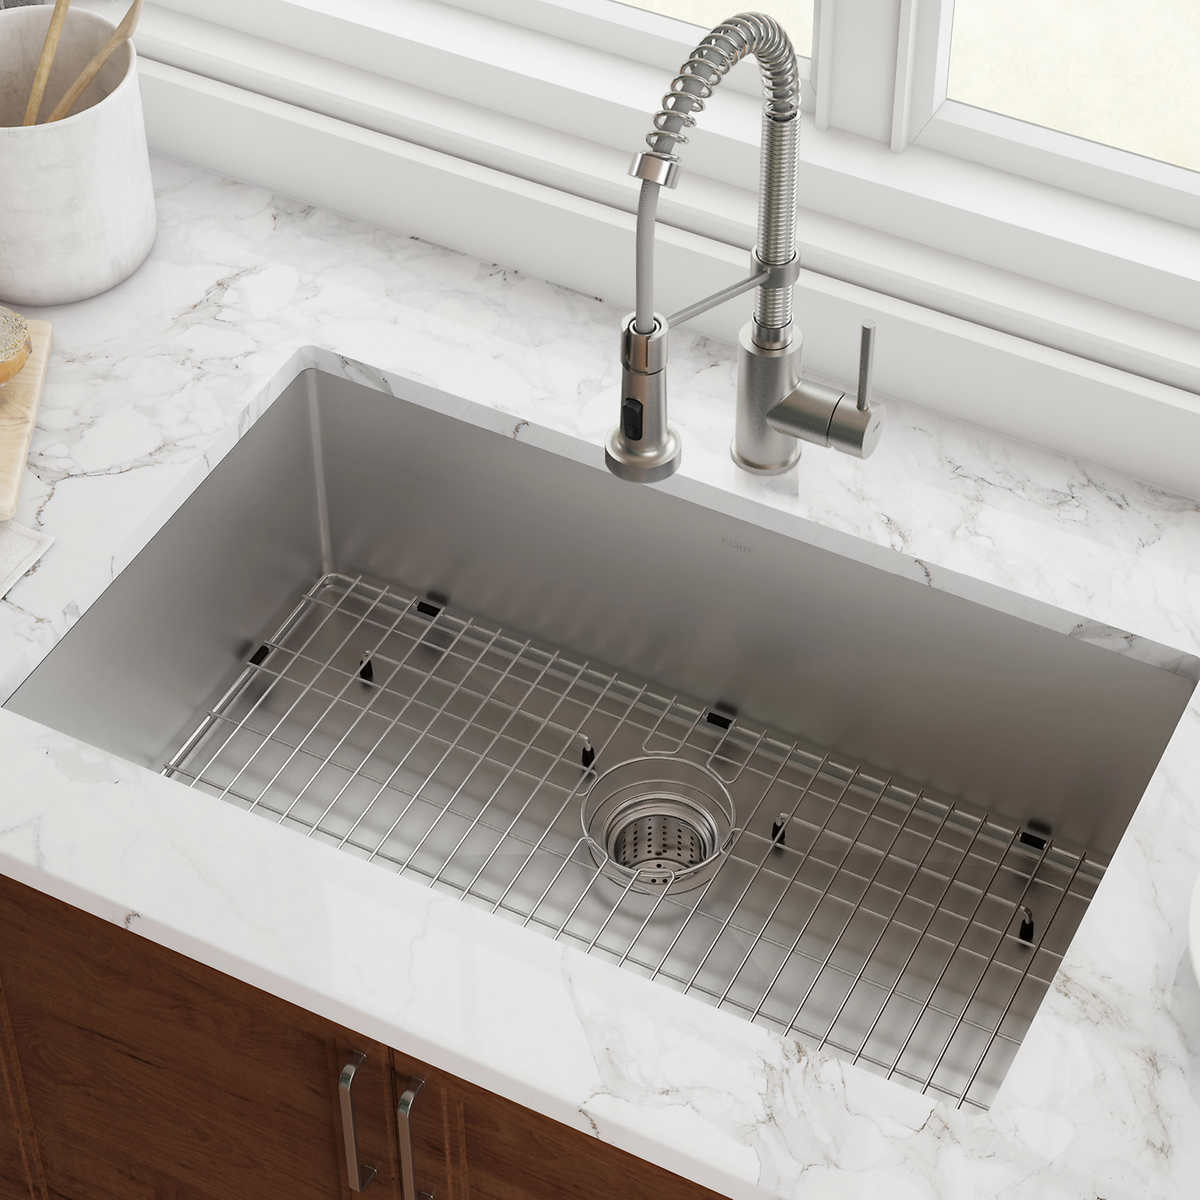 Kraus Single Bowl Stainless Steel Kitchen Sink